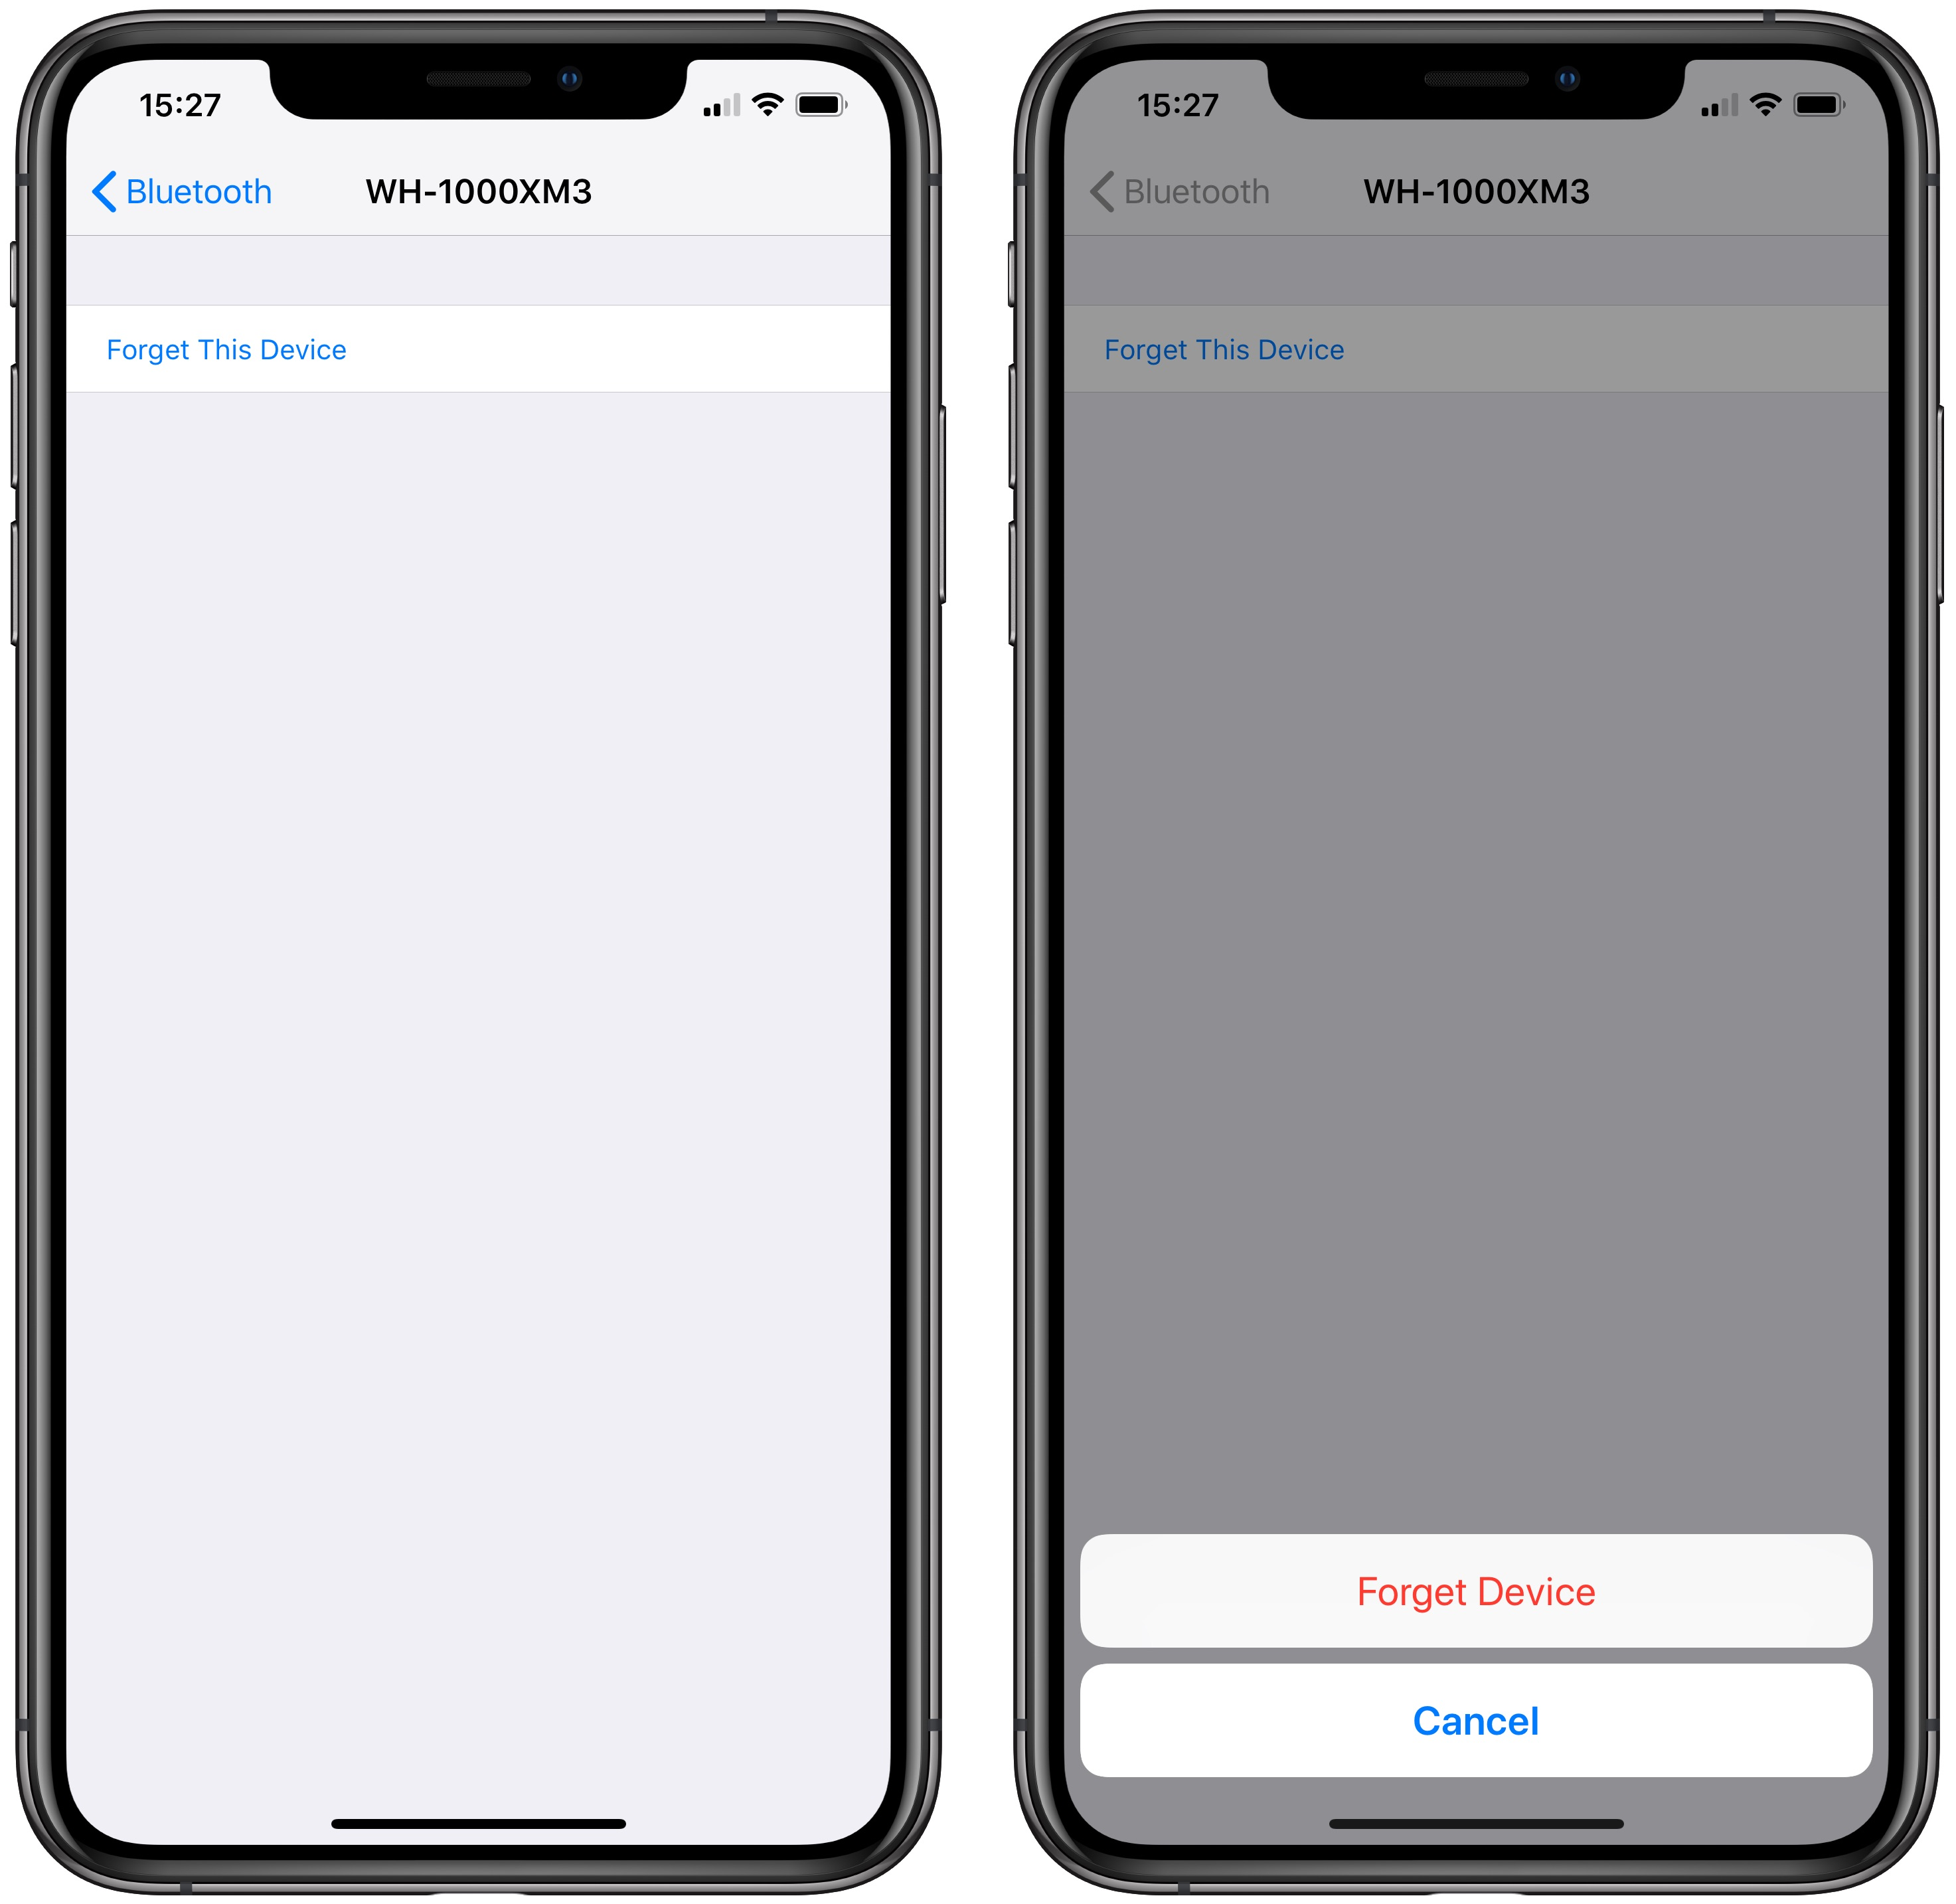 How to unpair Bluetooth devices on iPhone and iPad